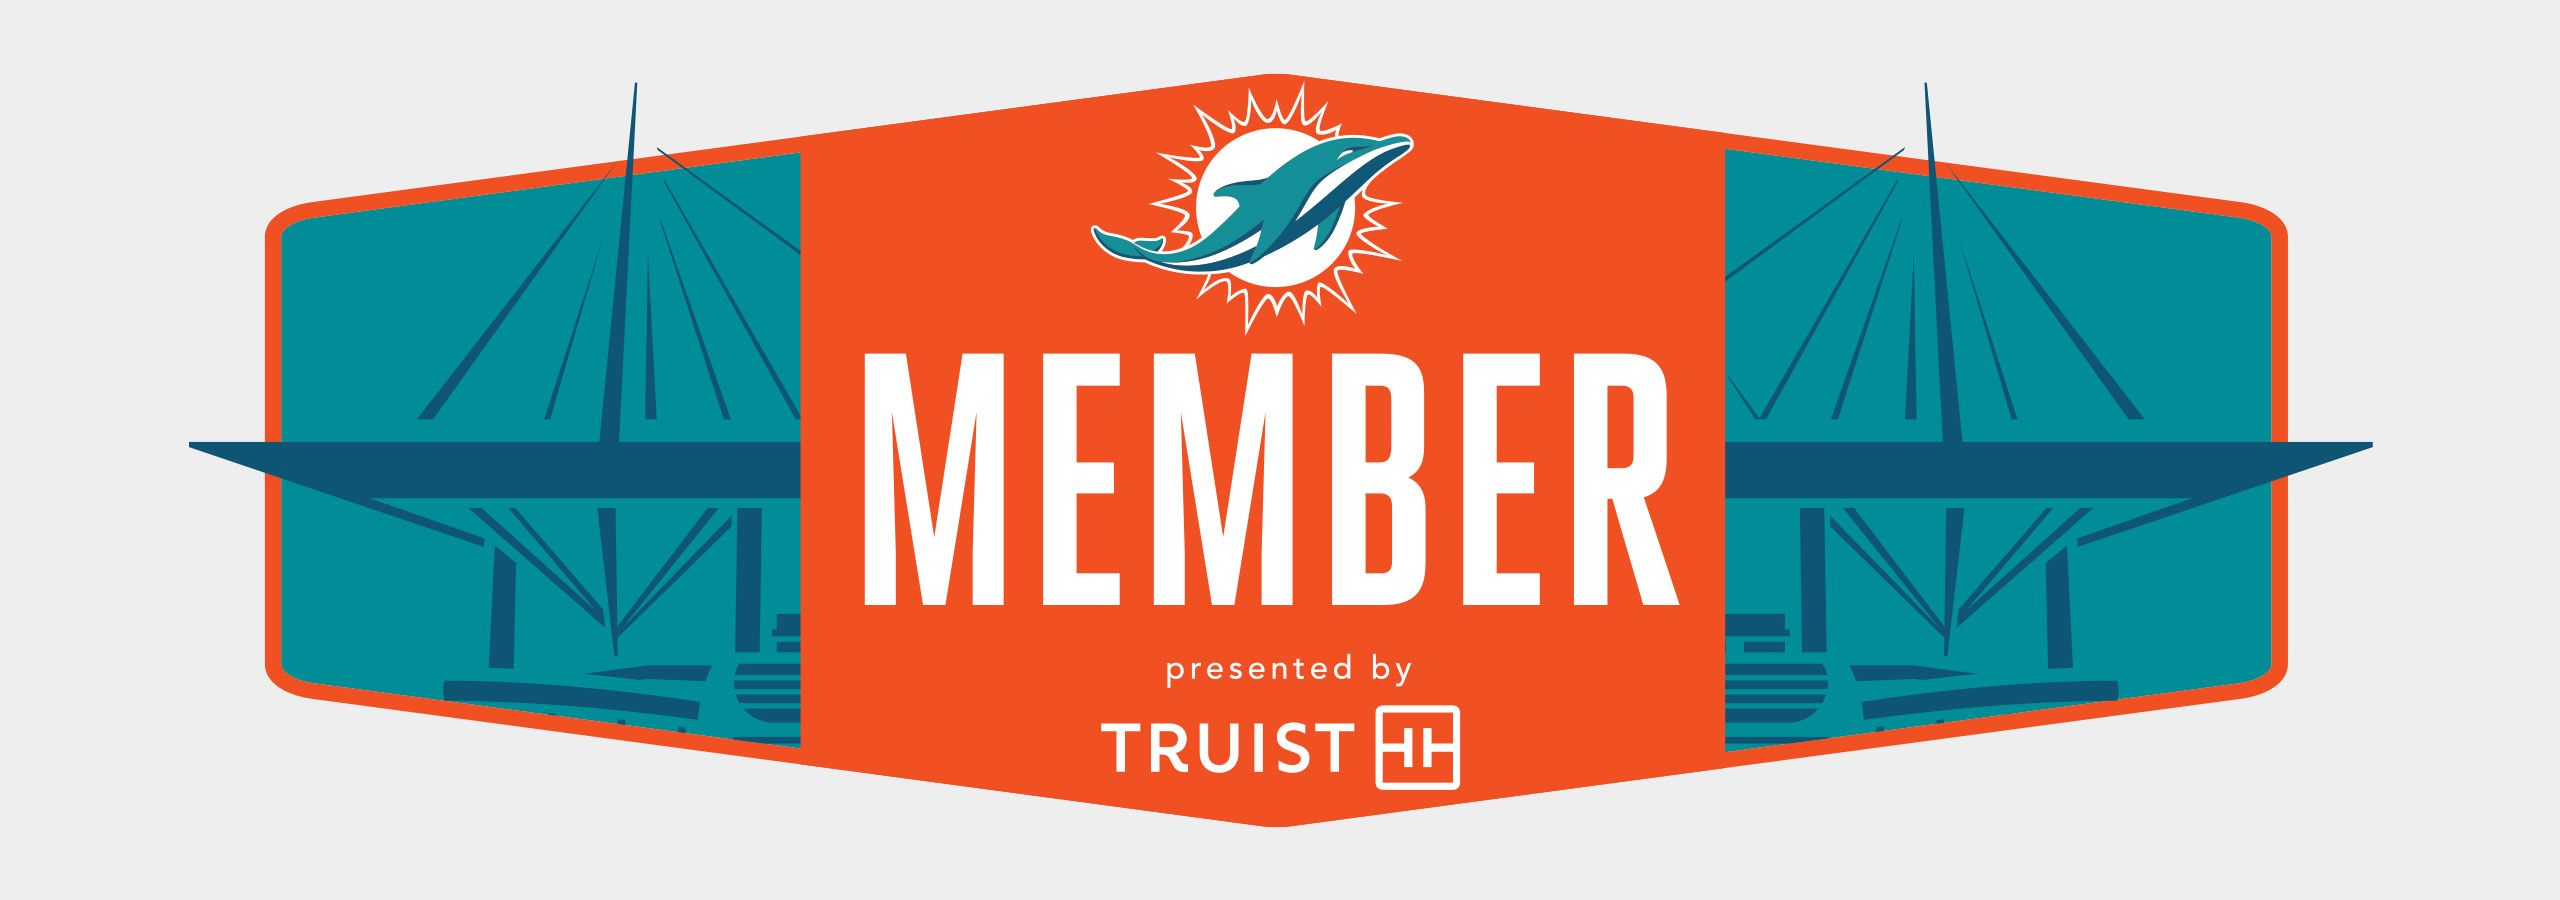 Banner Image: Miami Dolphins Membership Presented By Truist